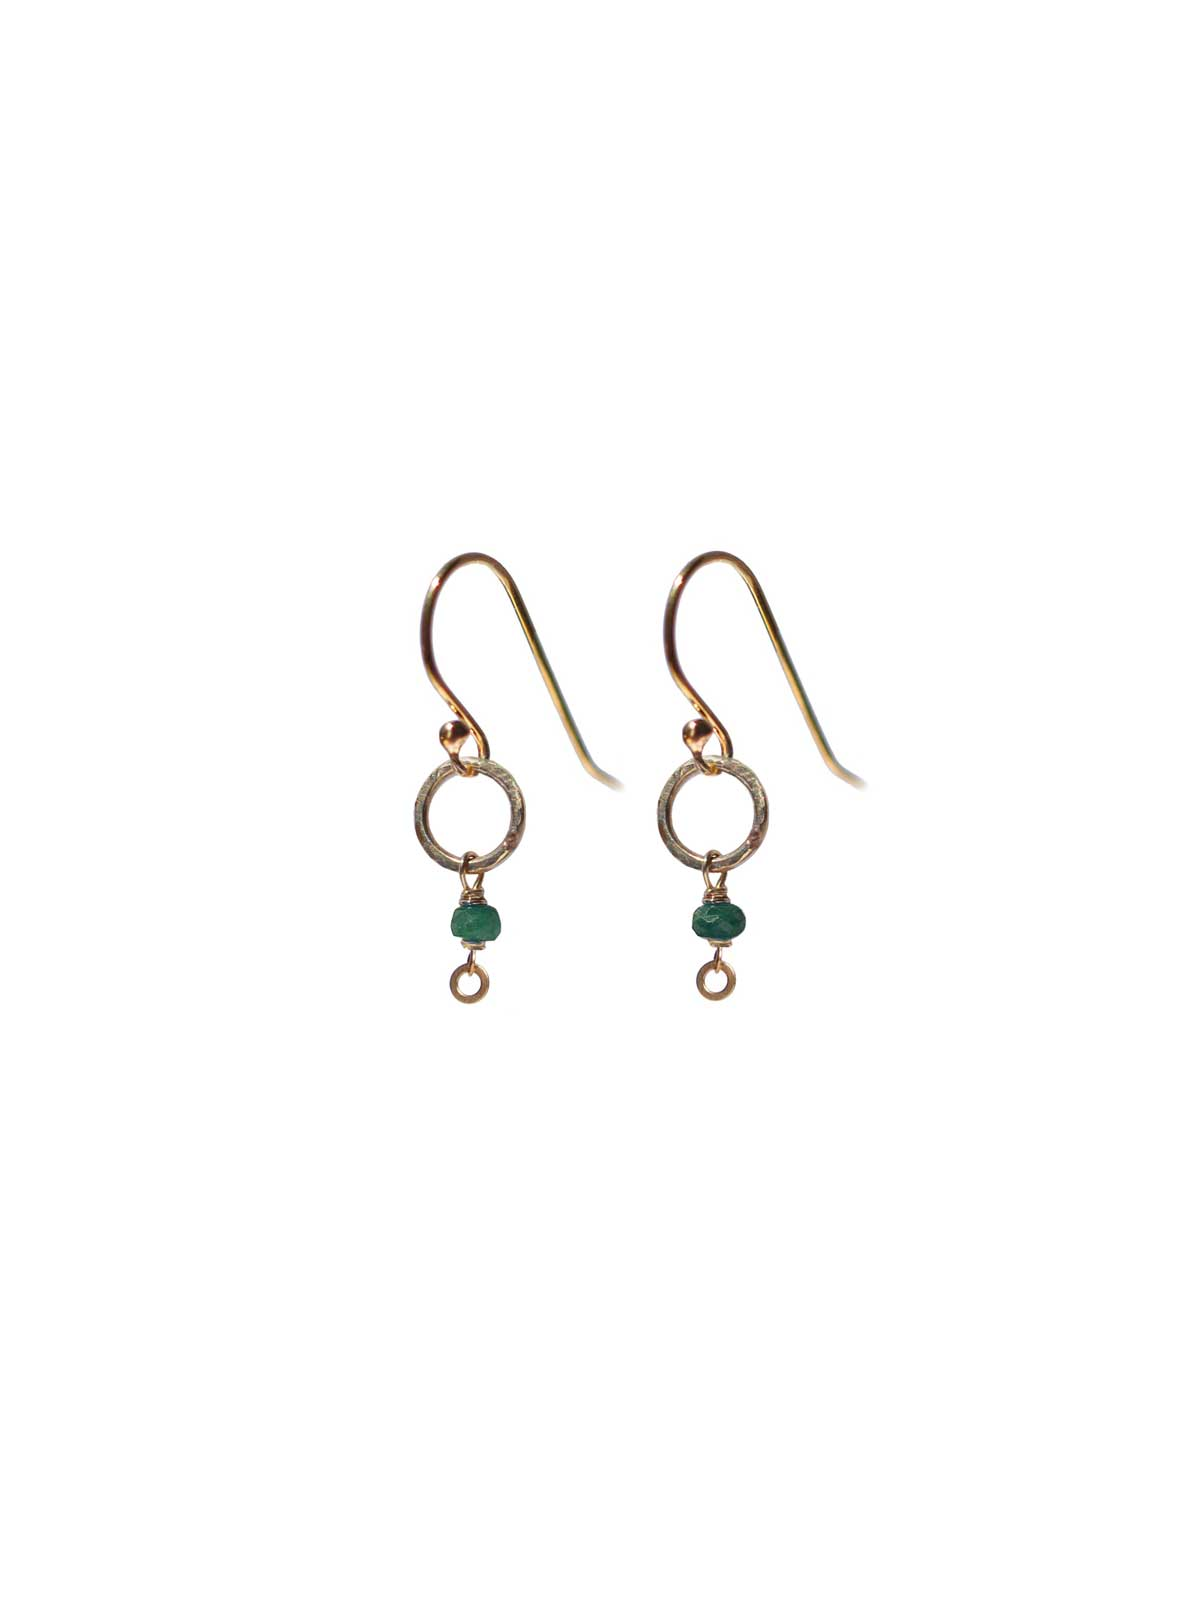 Earrings Gold-filled 14 Karat and Emerald